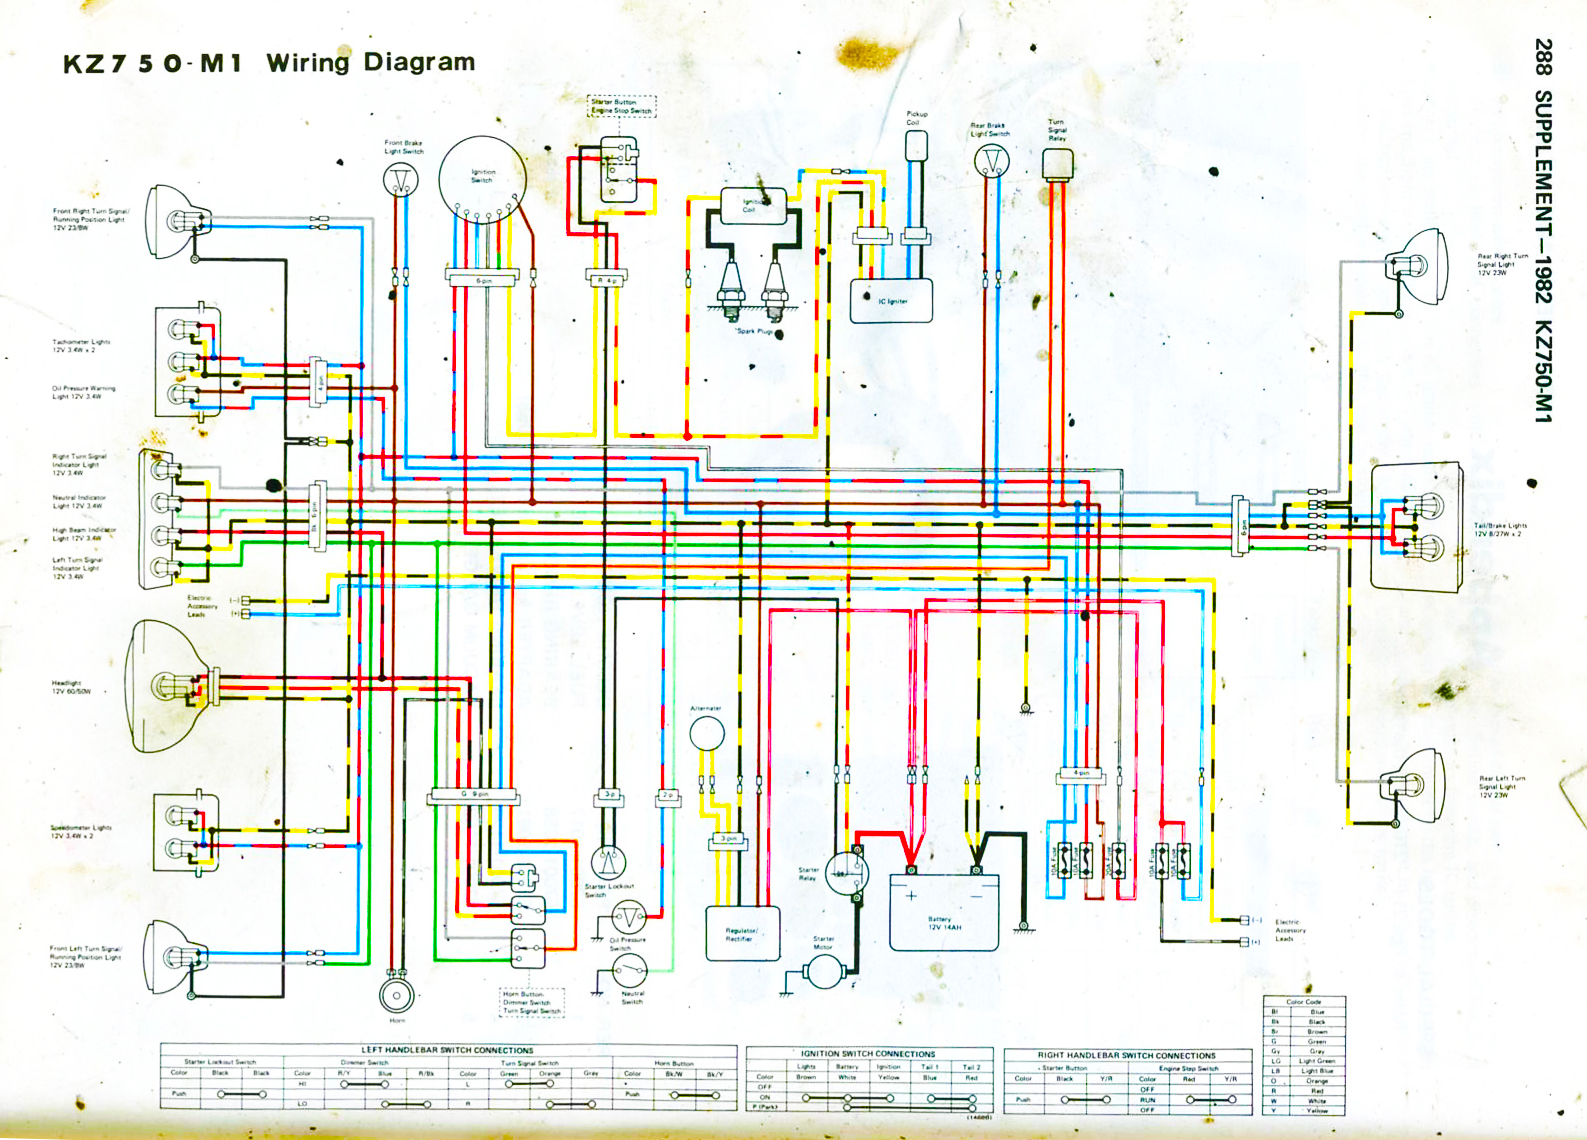 KZ750+Twin+DIAGRAM+WIRING csr wiring diagram house wiring diagrams \u2022 wiring diagram database  at soozxer.org